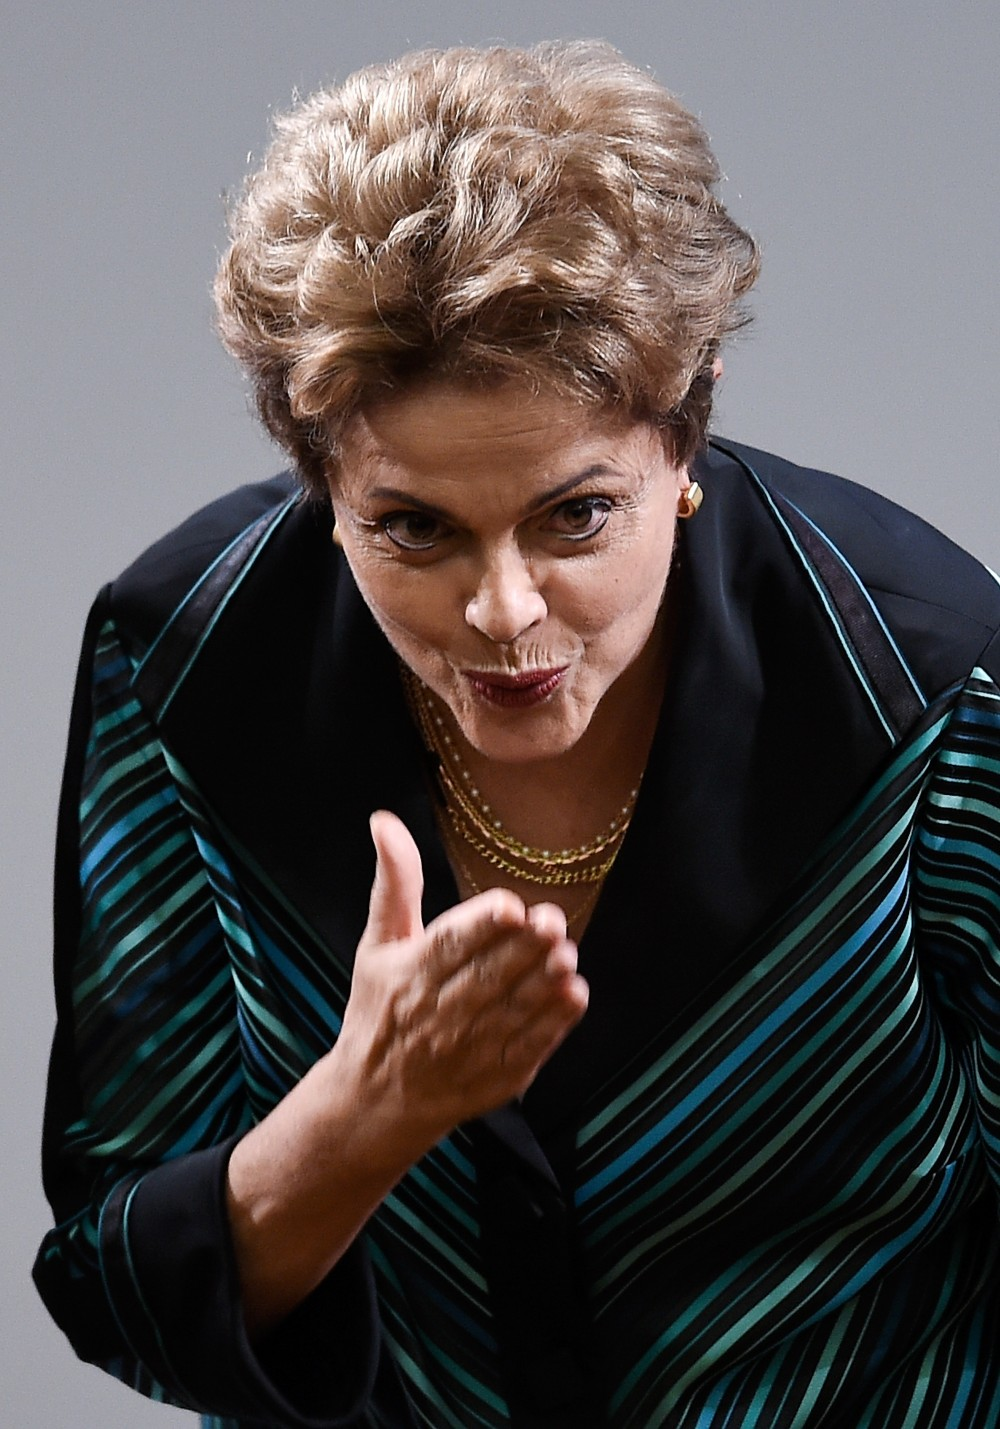 BRASILIA, BRAZIL - JULY 03:  Brazilian President Dilma Roussef gestures during a ceremony for presents the Olympic Torch and Relay Route of the Rio 2016 Olympic Games on July 3, 2015 in Brasilia, Brazil.  (Photo by Buda Mendes/Getty Images)